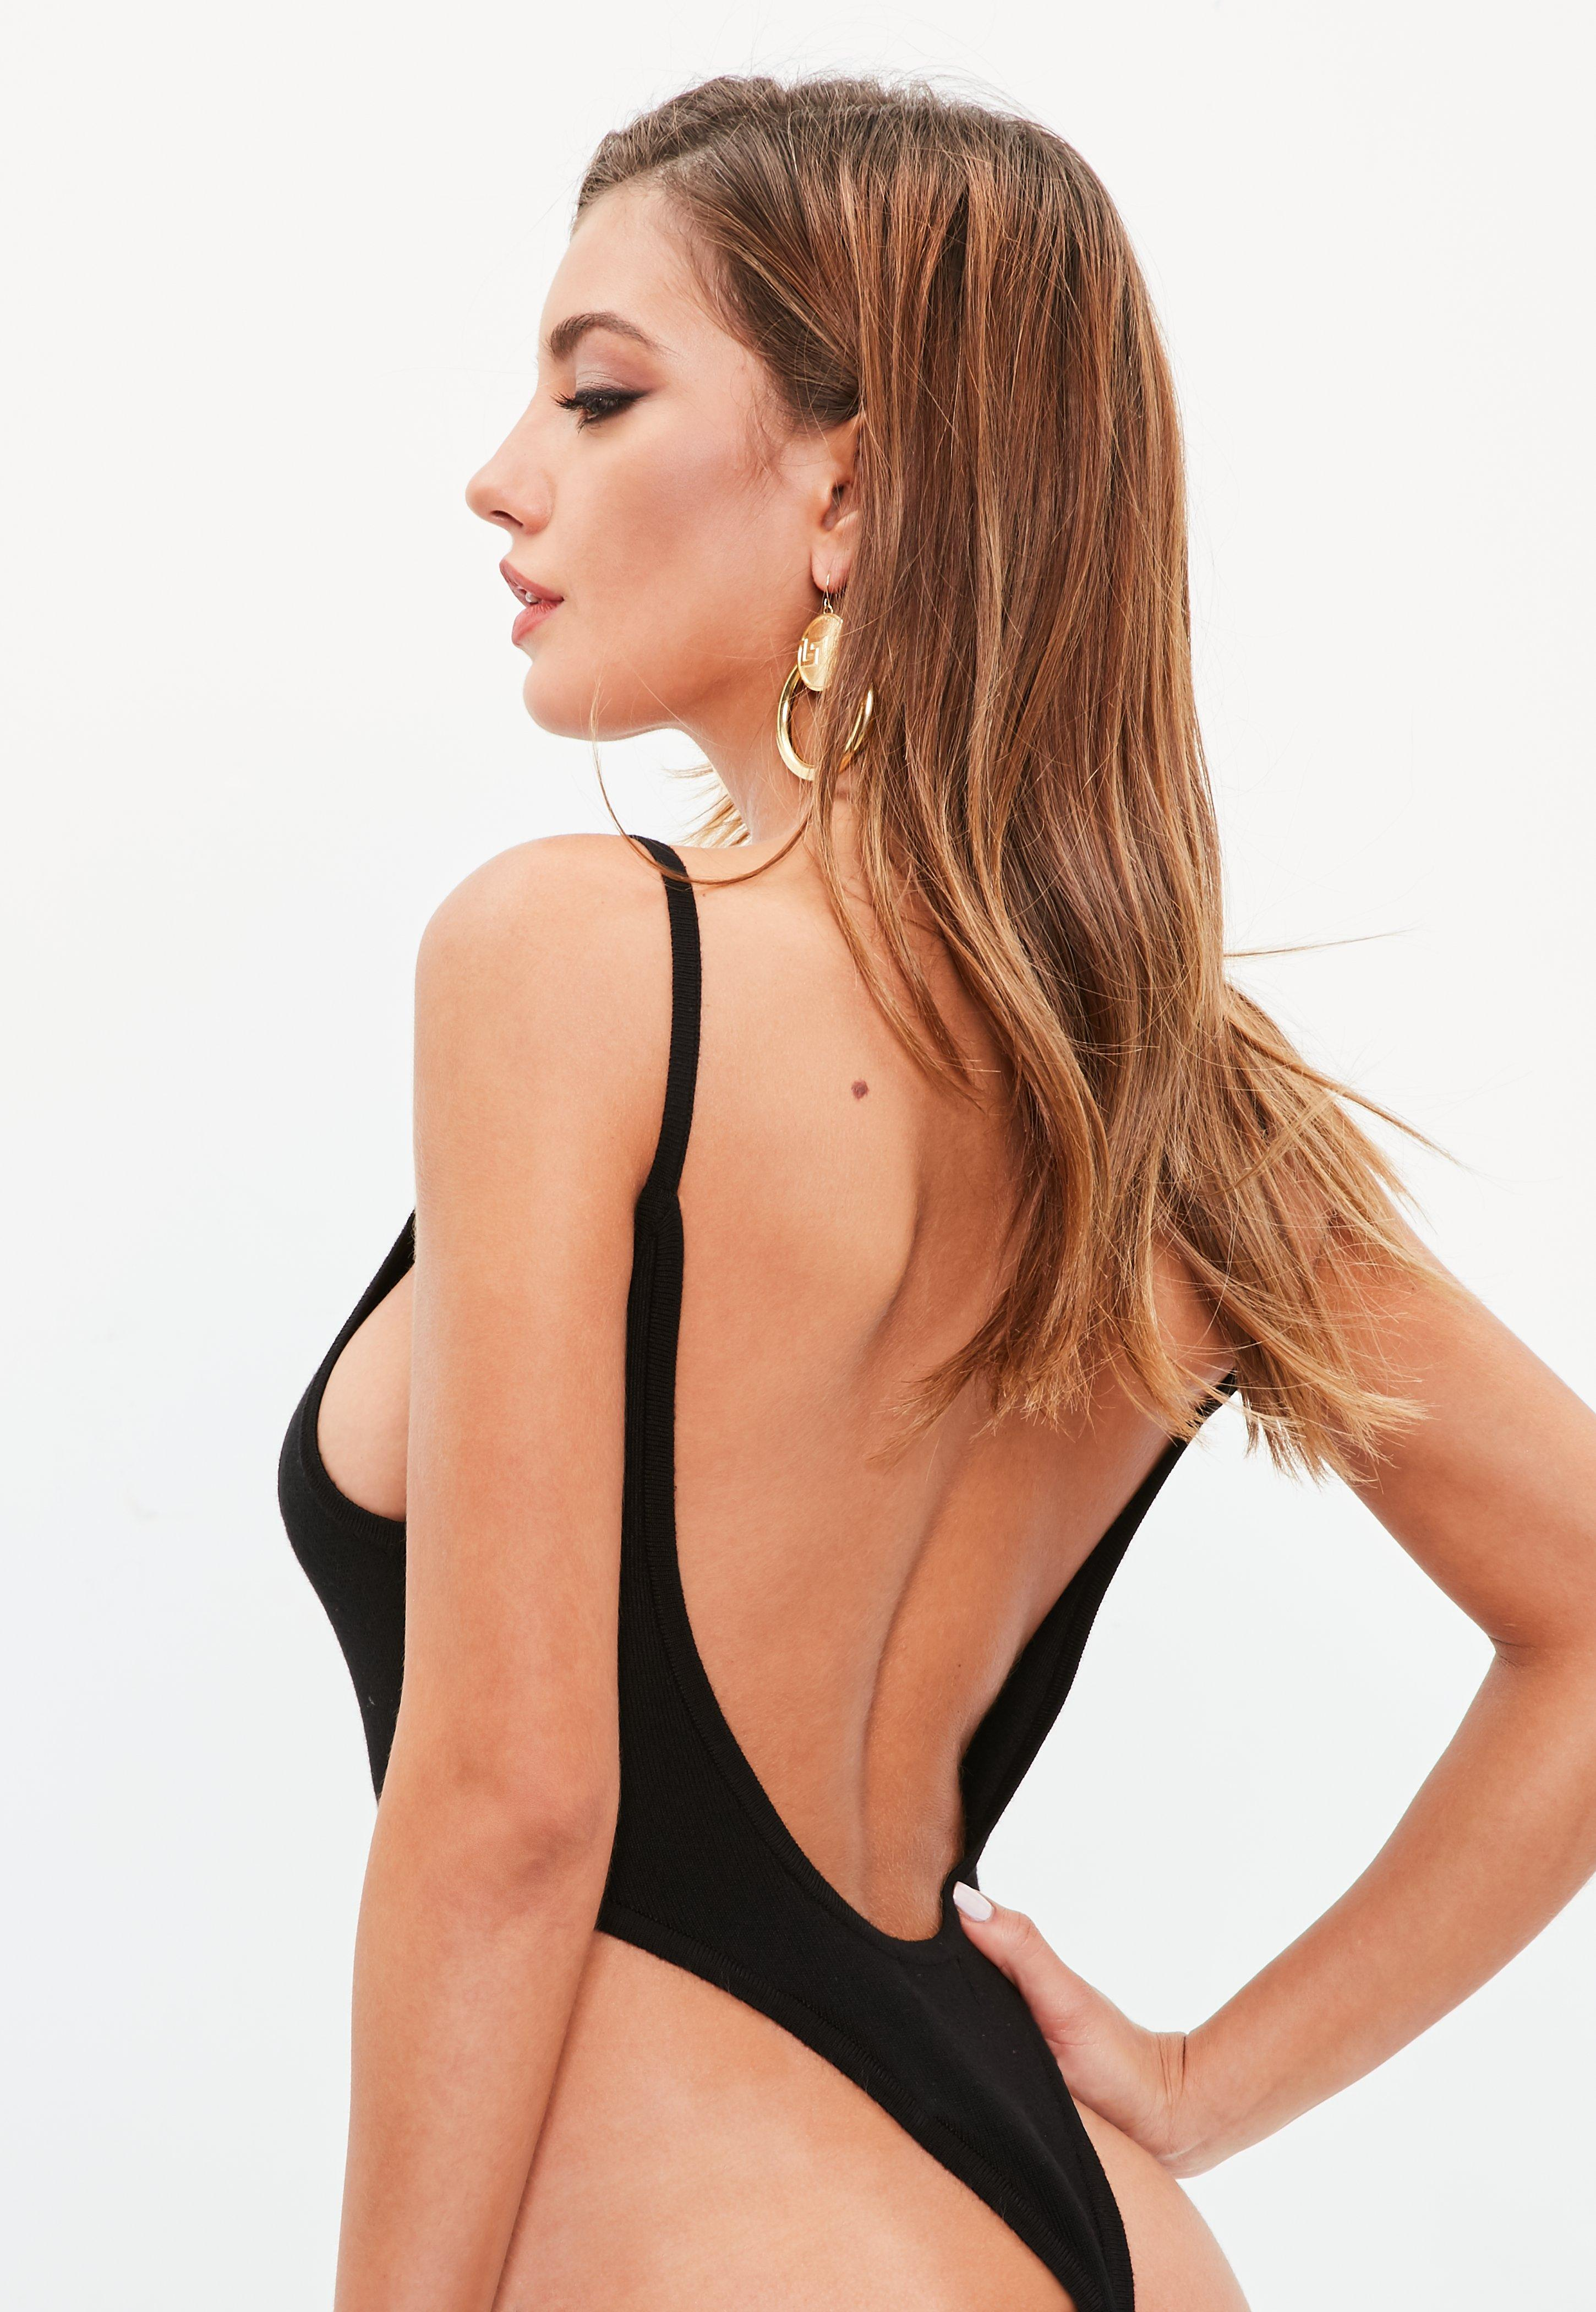 Lyst - Missguided Black Extreme High Leg Scoop Back Bodysuit in Black 446ced39a